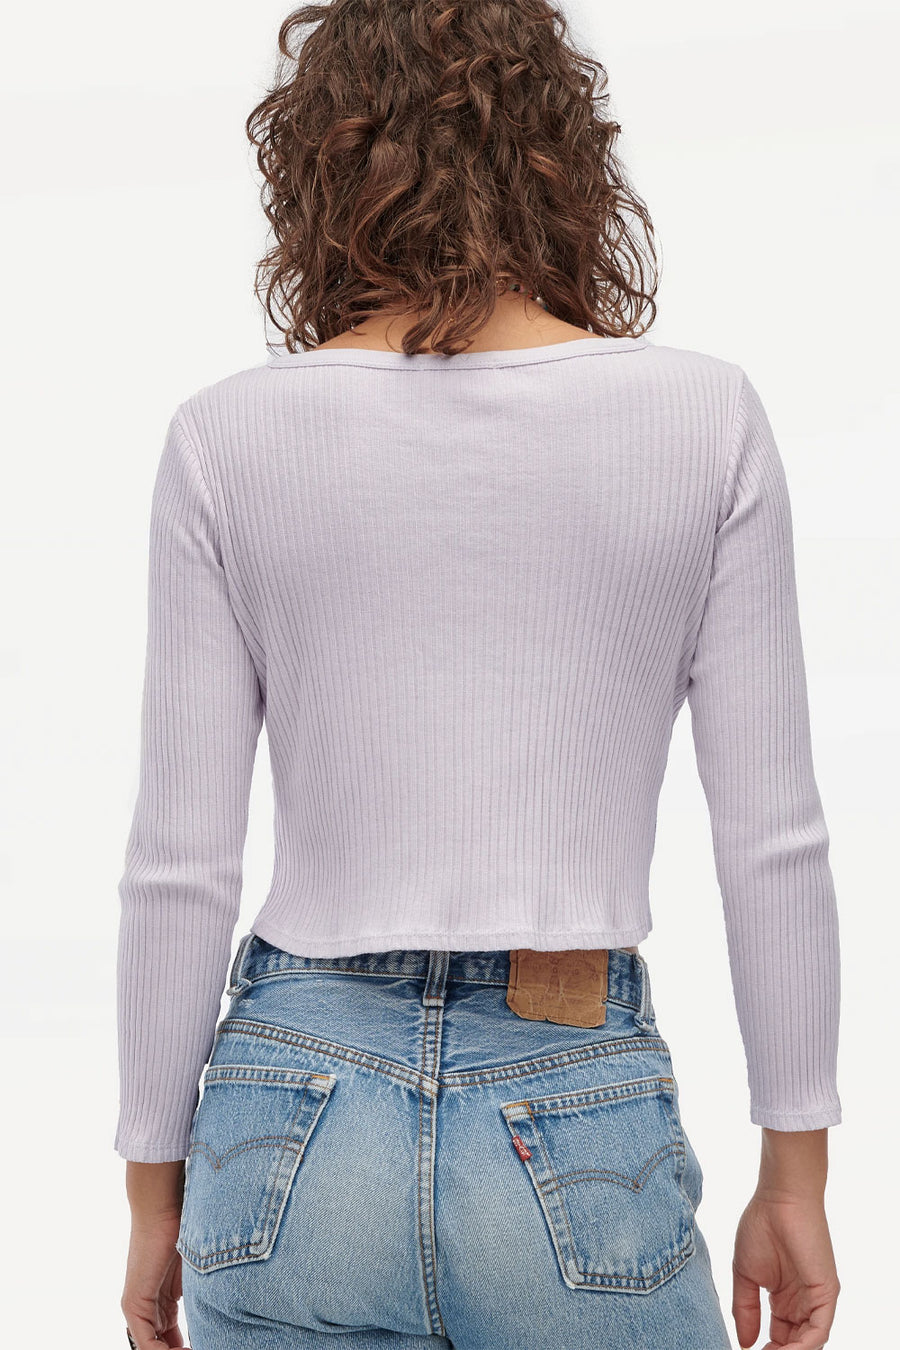 Lucy Cardigan | Lilac | LACAUSA NZ | Tops NZ | Black Box Boutique Auckland | Womens Fashion NZ